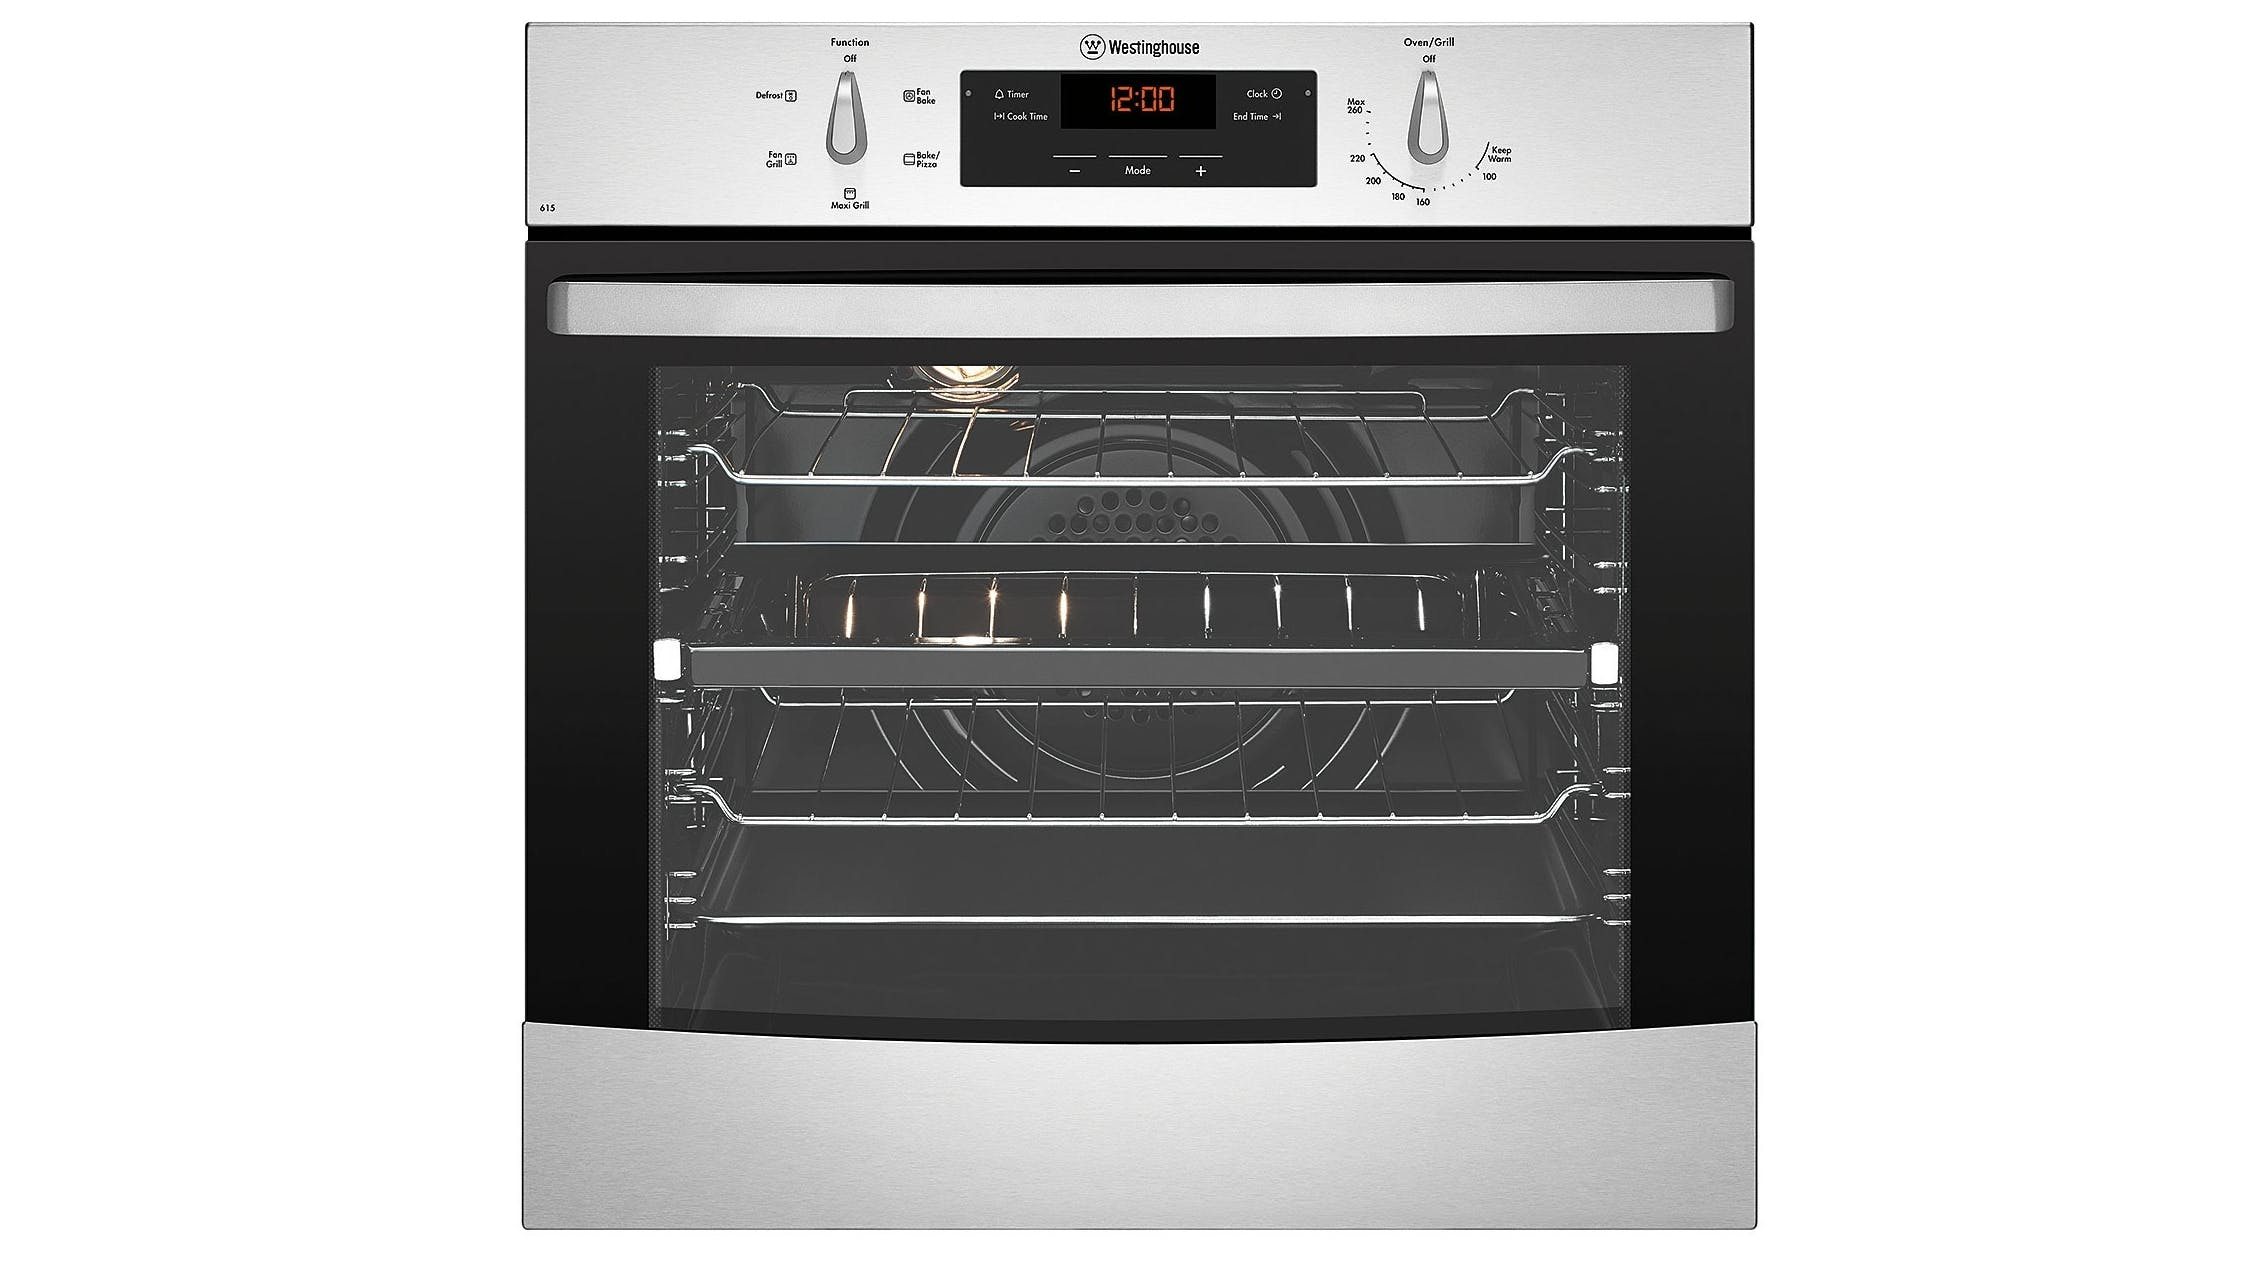 Westinghouse 60cm Multifunction Oven - Stainless Steel | Domayne